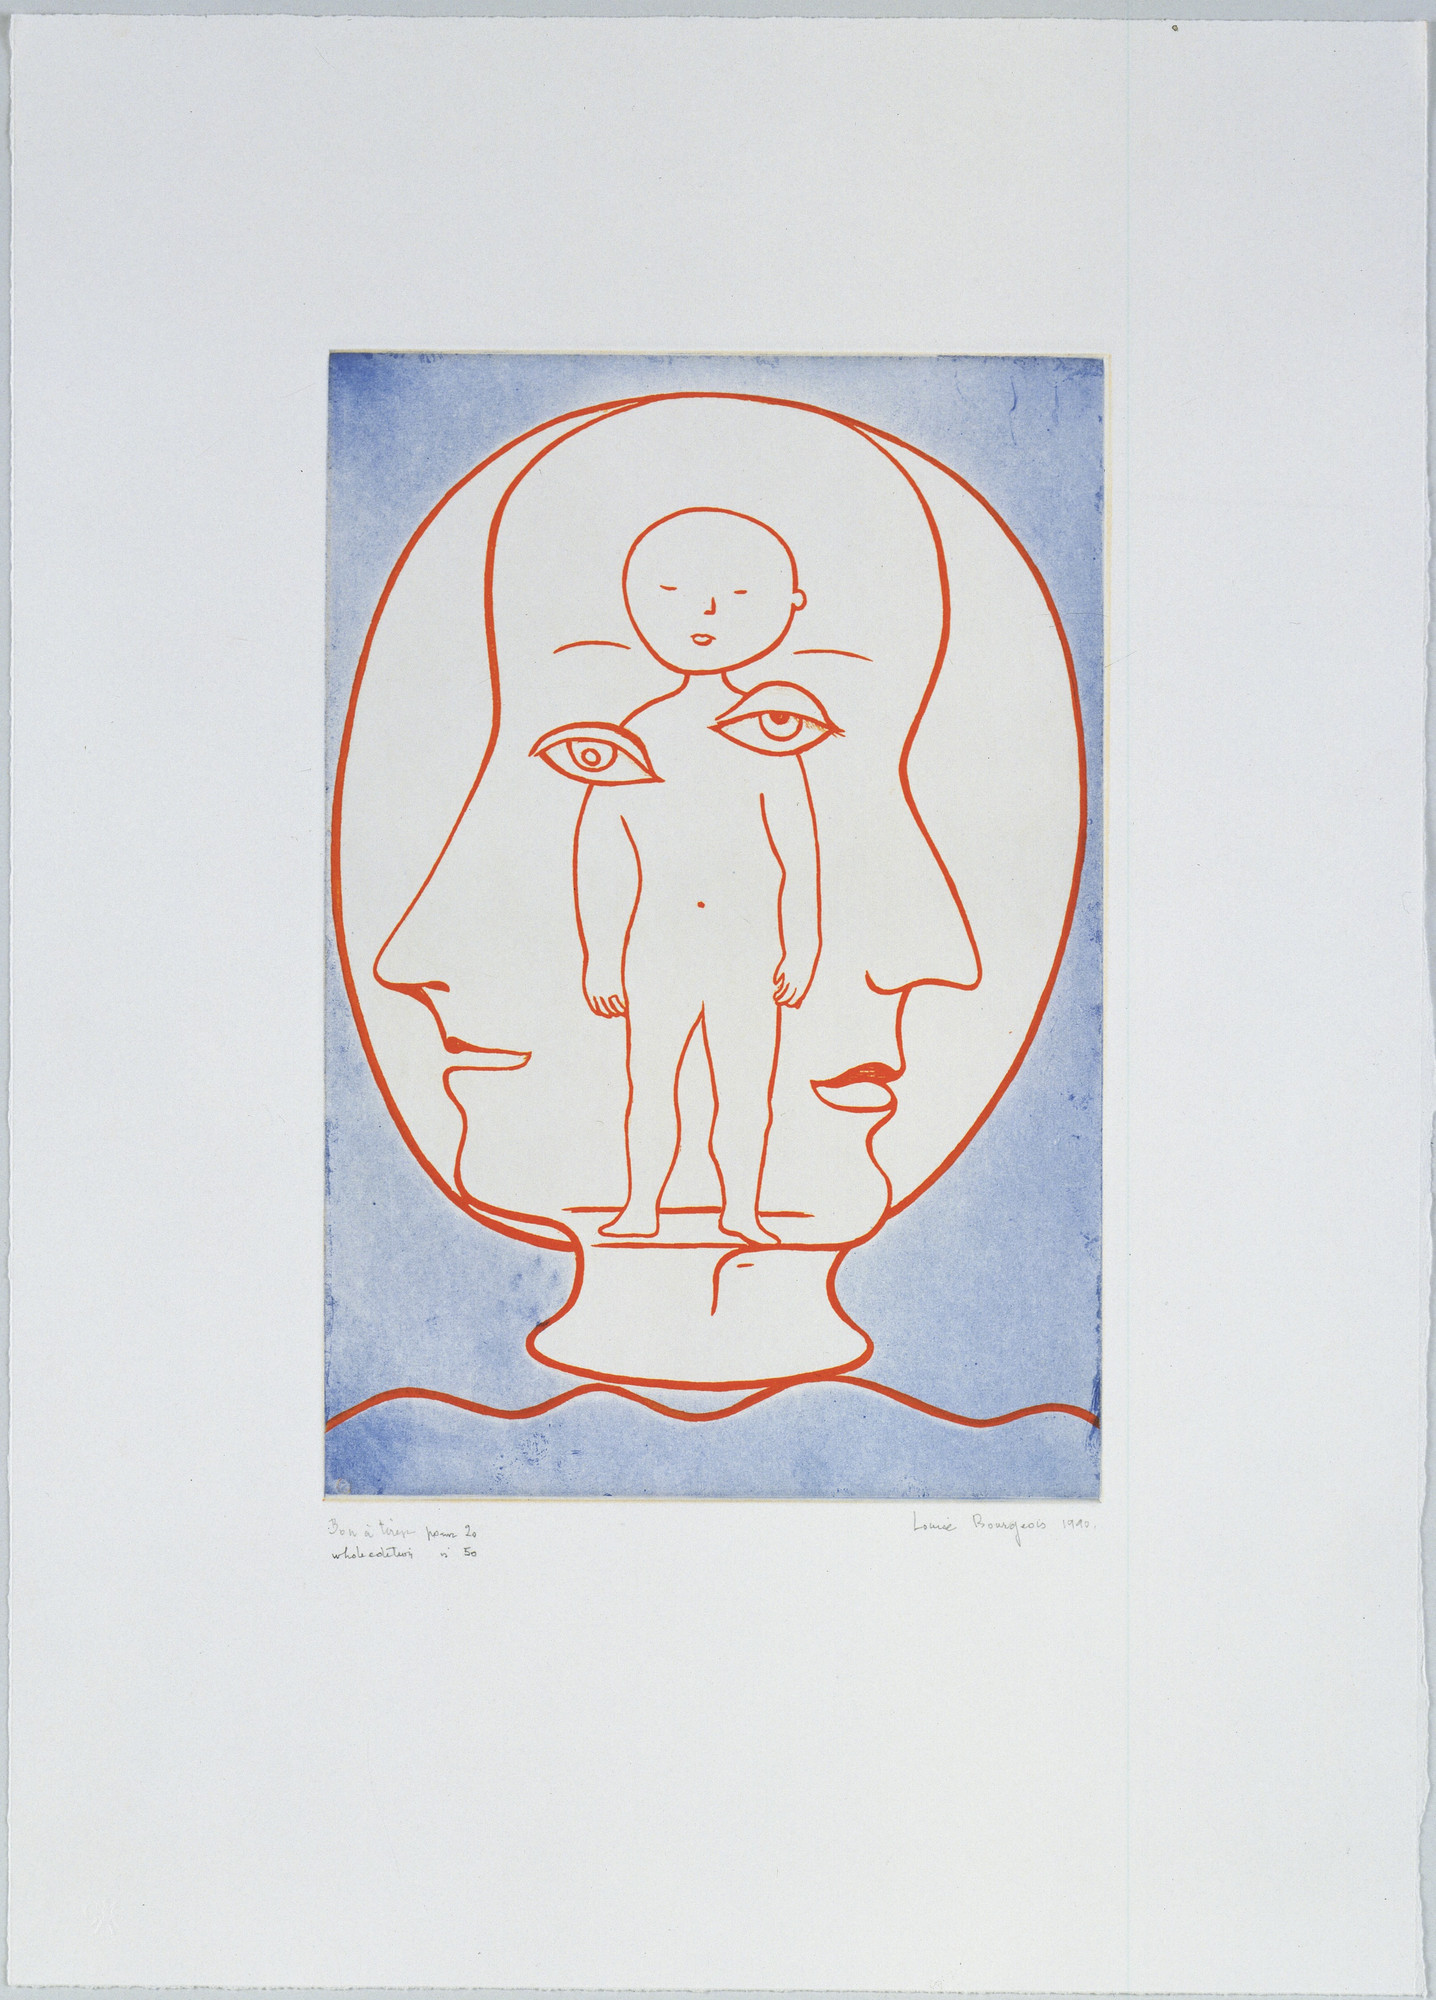 Louise Bourgeois. Self Portrait. 1990